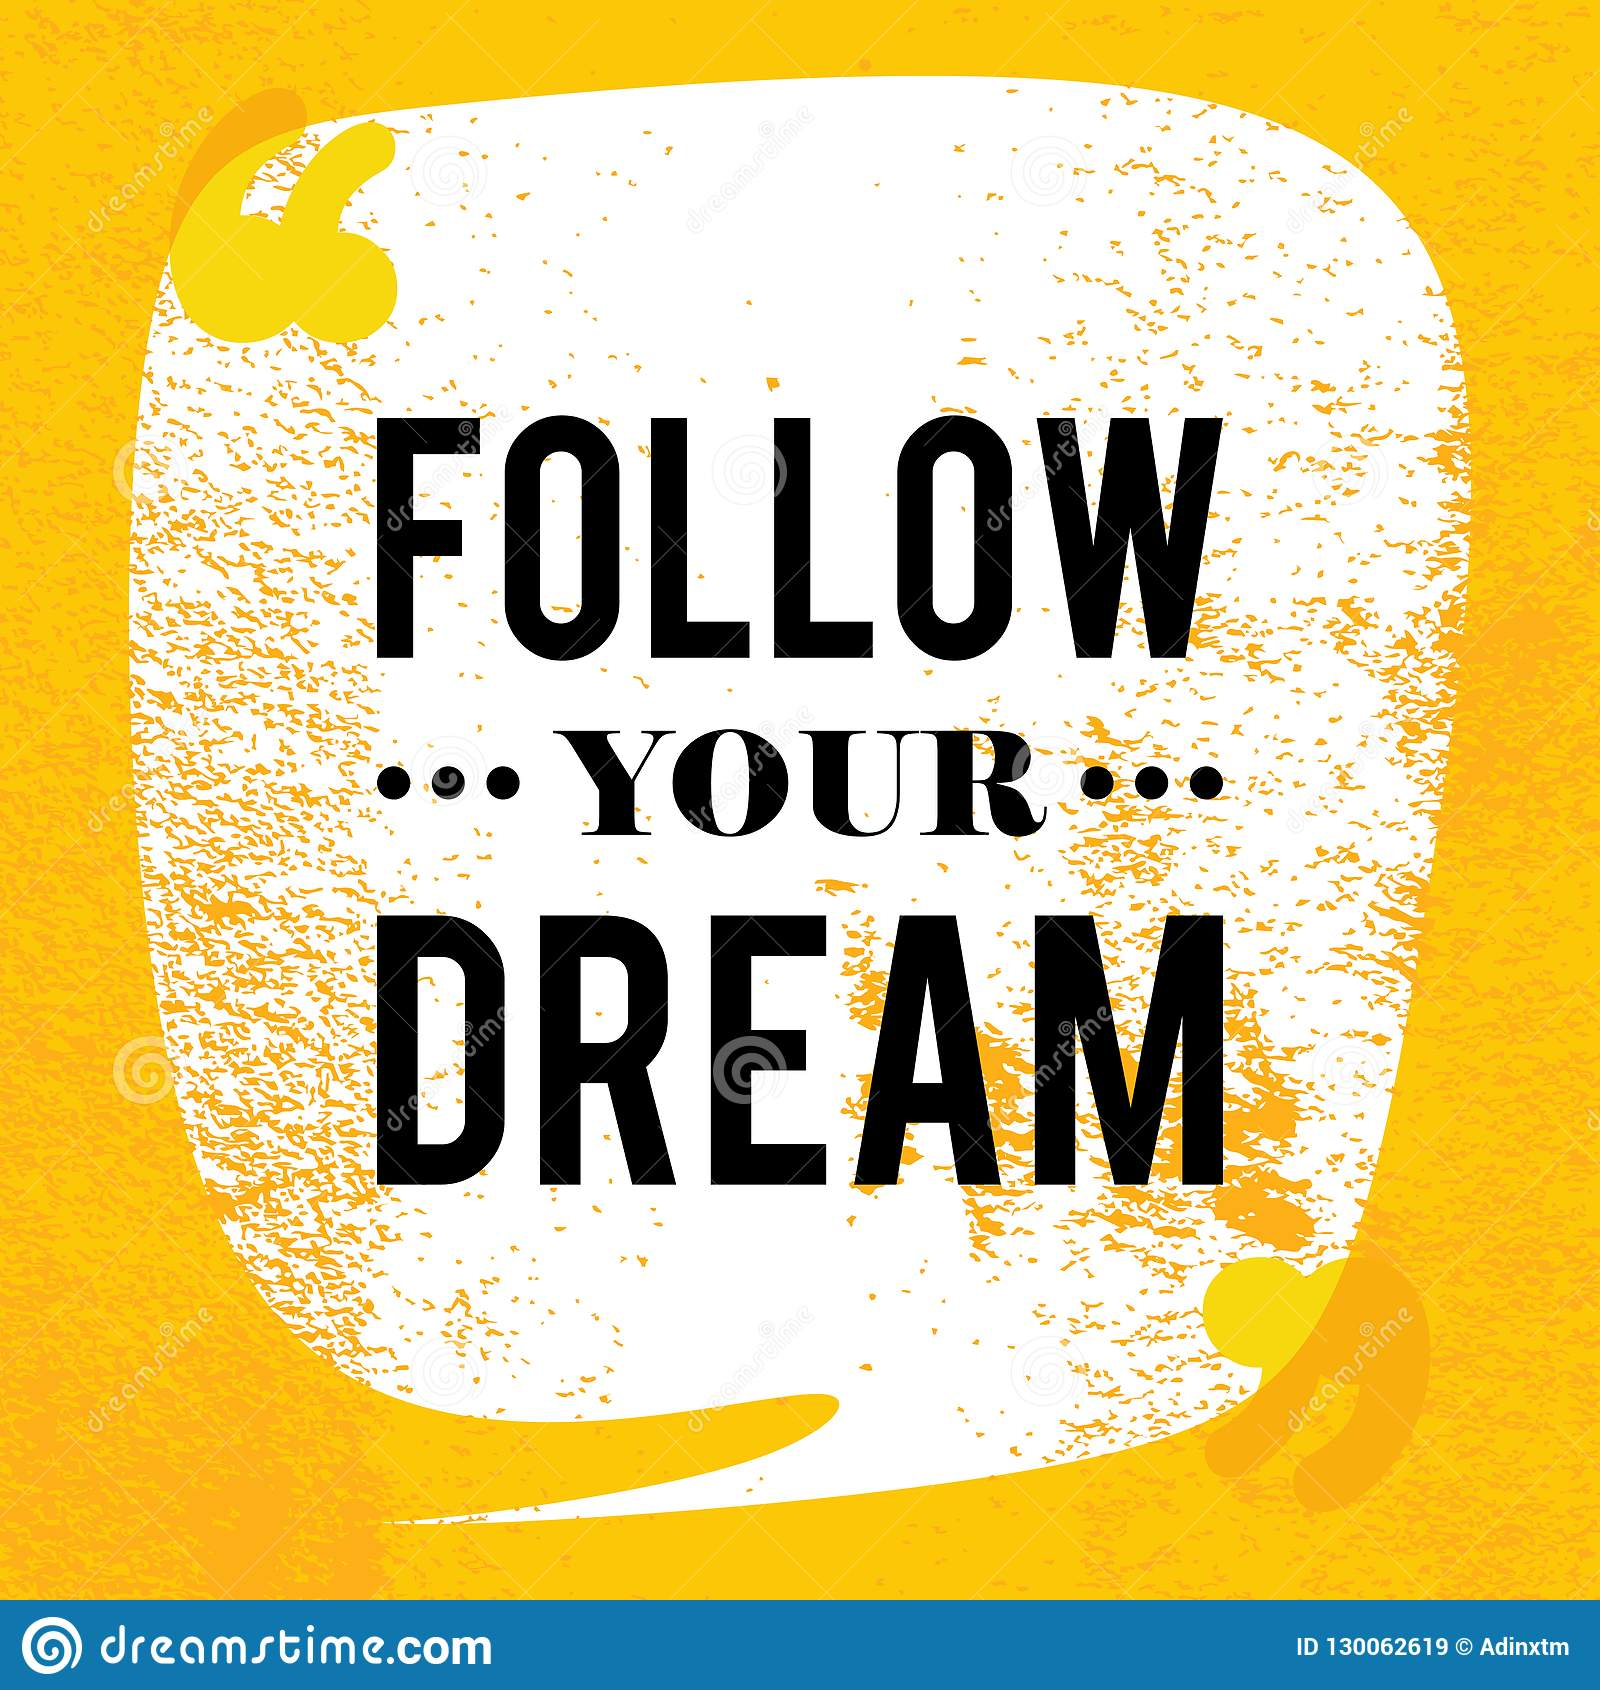 Follow Your Dream Motivational Quotes Poster Vintage Design With